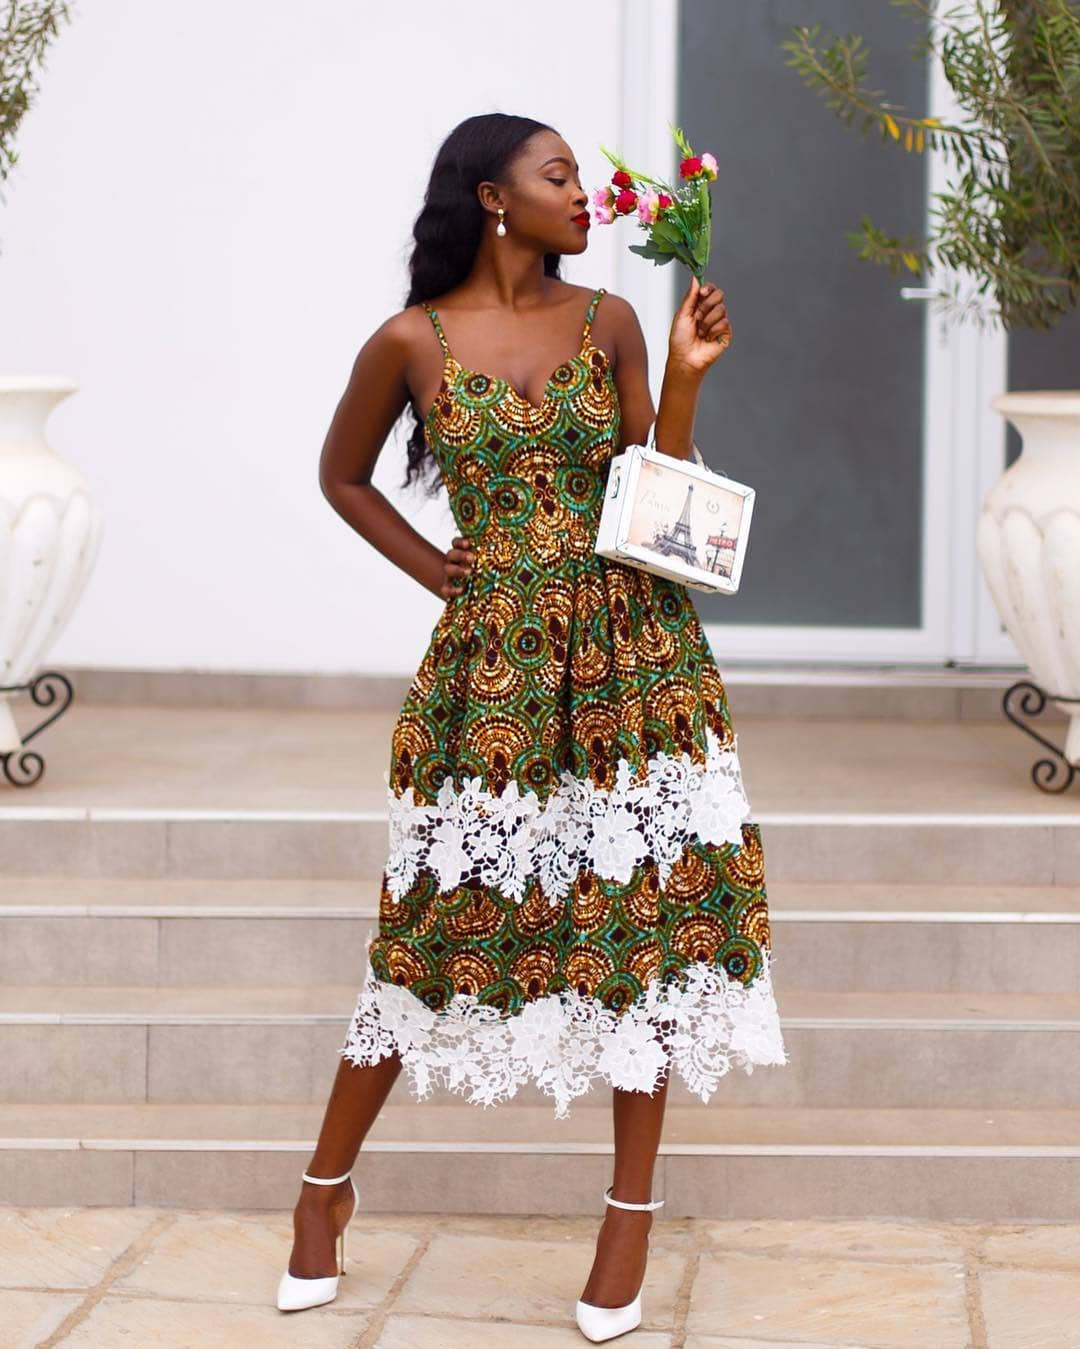 Team Up With Your Bestie With These Fabulous Ankara Outfits